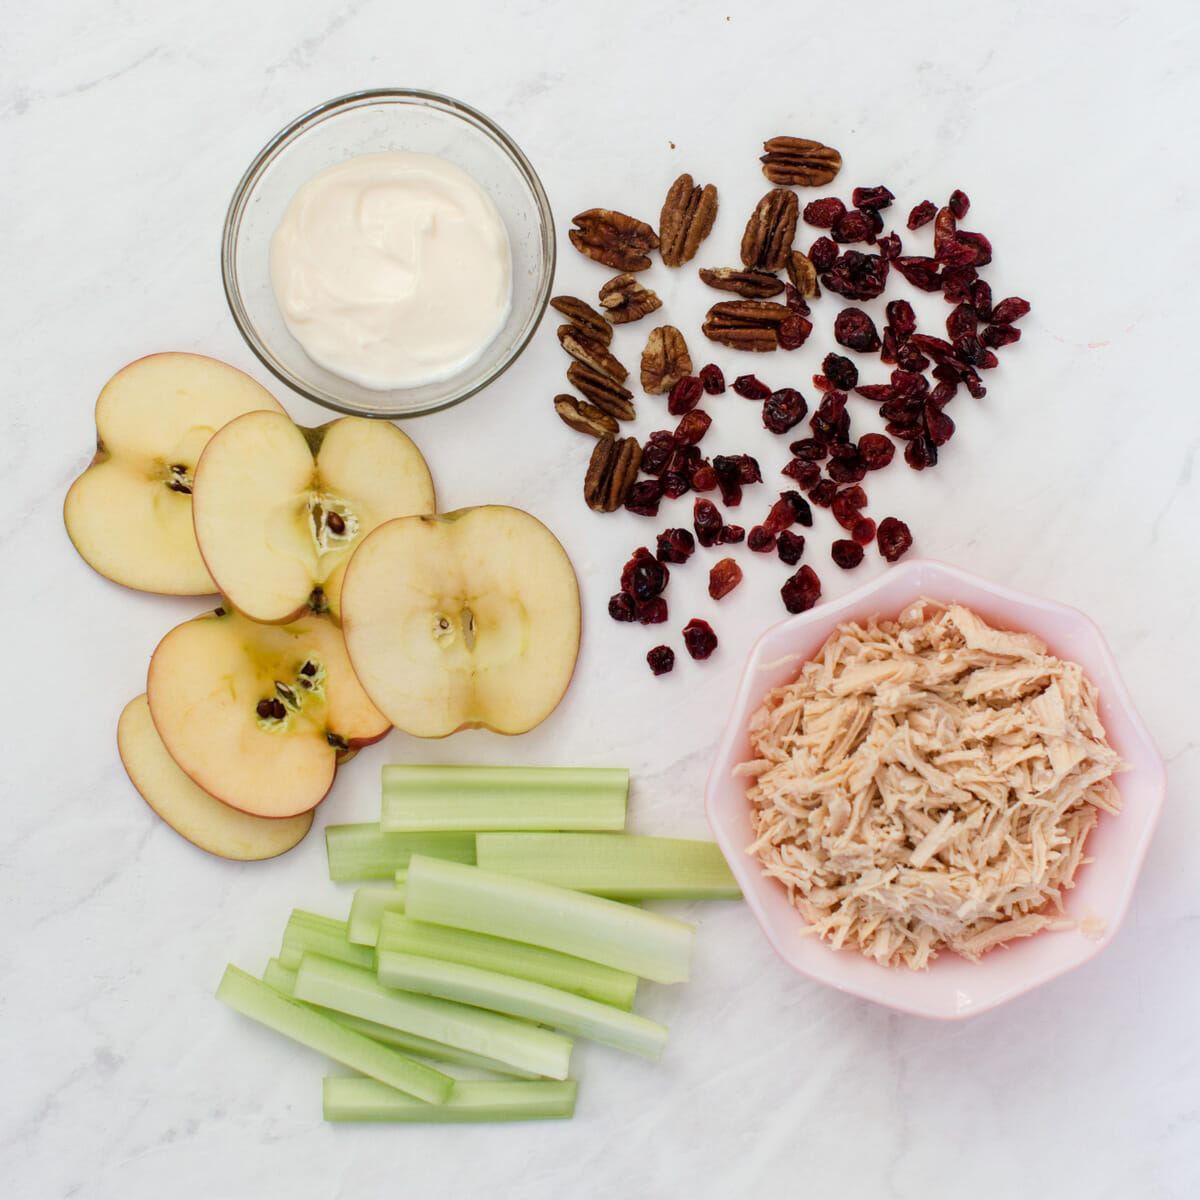 Cranberry Chicken Salad Apple Bites | summer party foods | chicken salad recipes | healthy appetizers | party appetizers || JennyCookies.com #summerparty #recipe #summerecipe #chickensalad #apples #applebites #appetizer